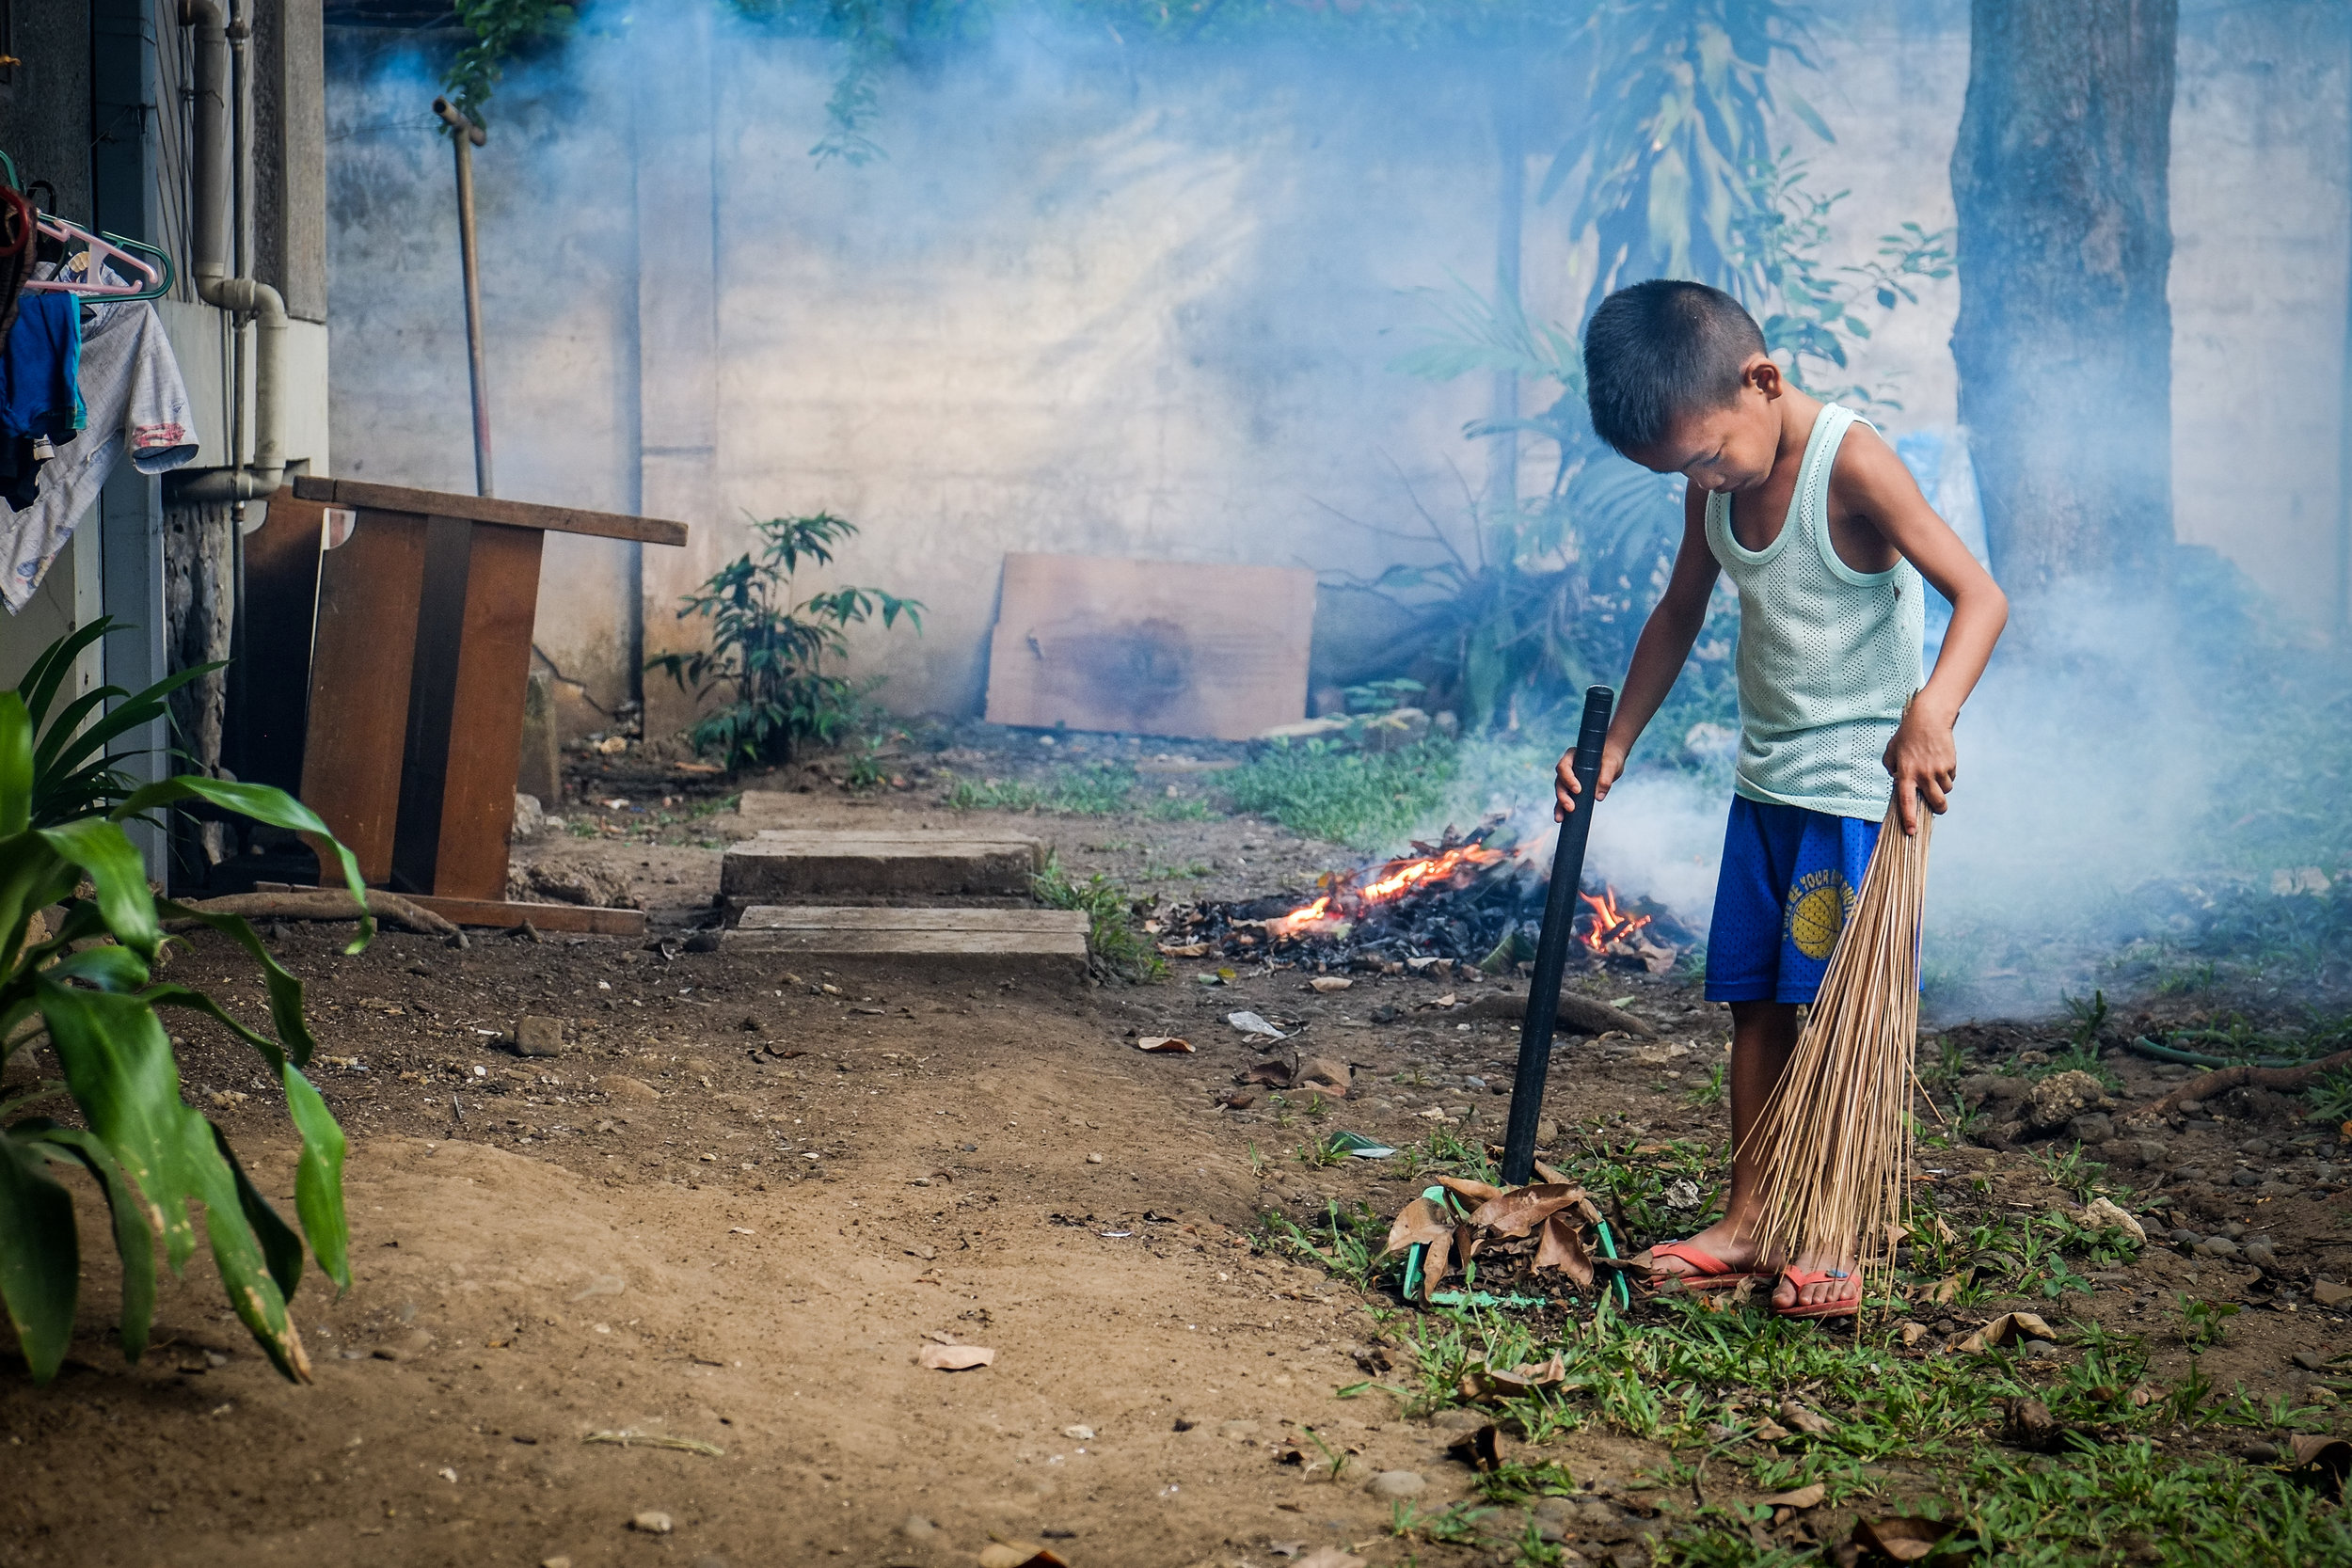 At SOS Davao a young boy performs his daily chores of sweeping up fallen leaves and burning them.